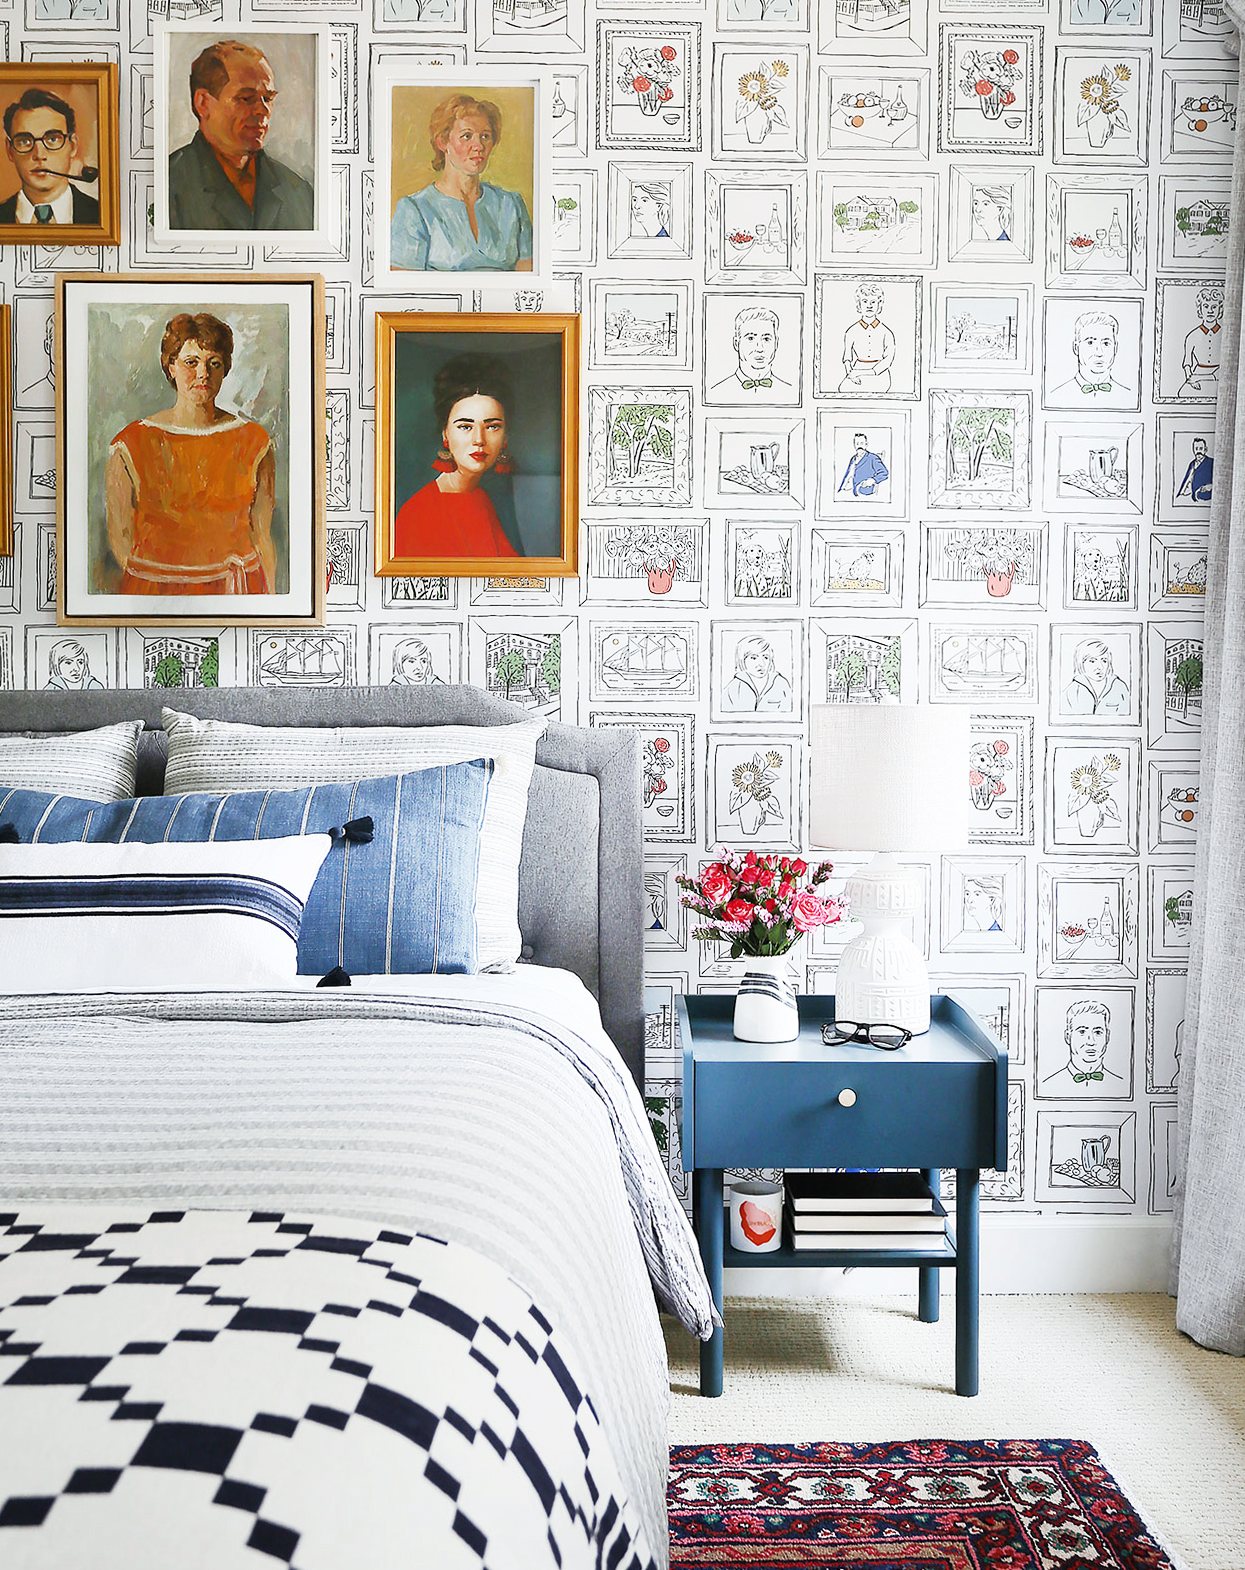 A BOLD & QUIRKY GUEST ROOM